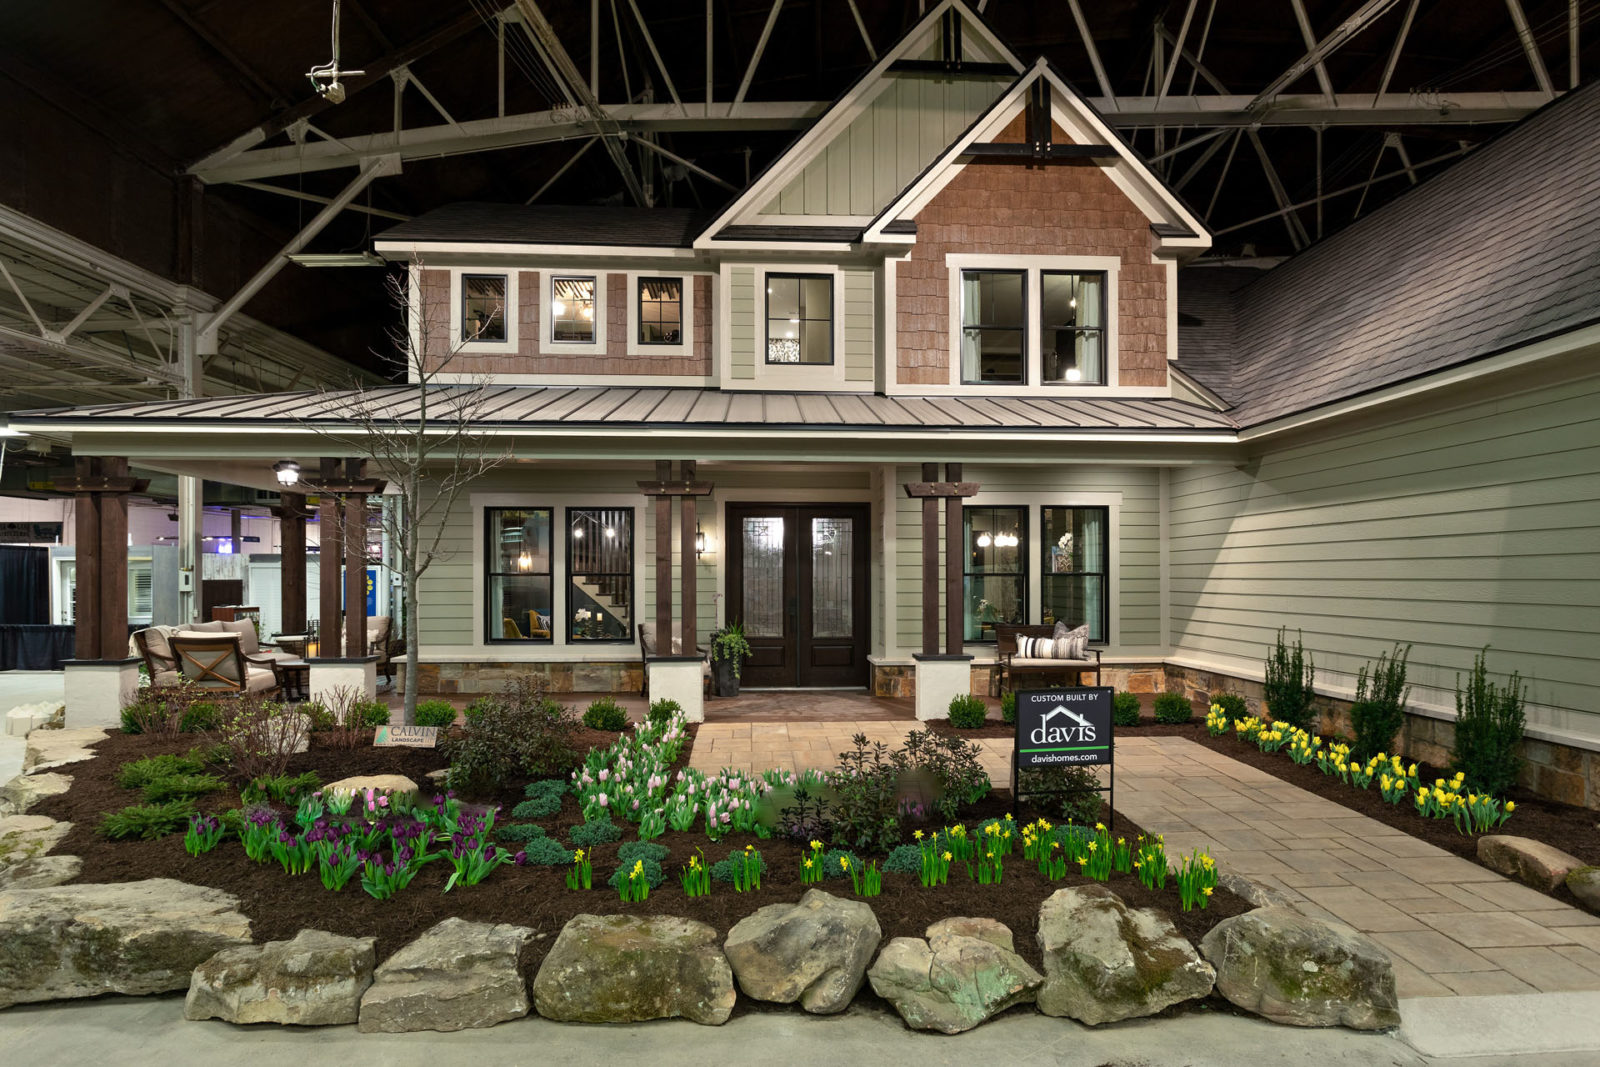 Indianapolis Home Show 2020.2019 Indianapolis Home Show Davis Homes